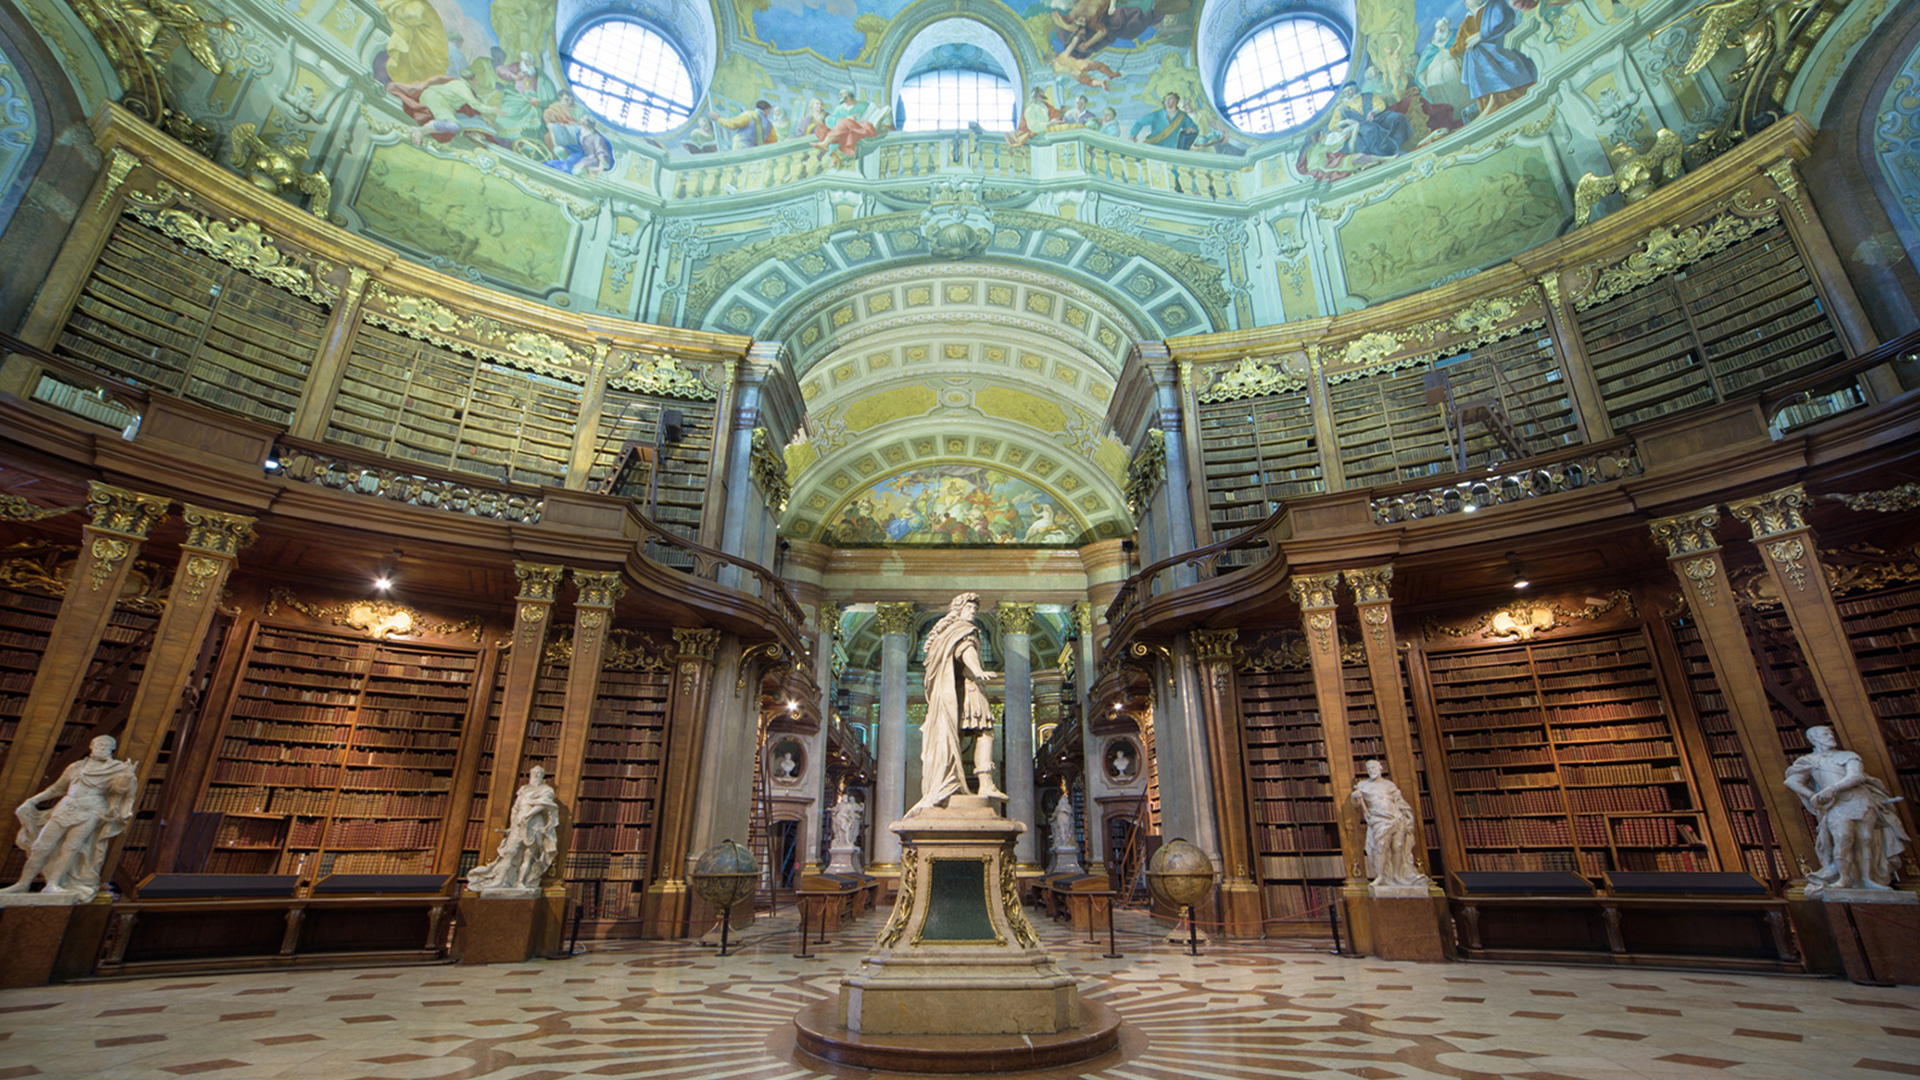 Promote the importance of Europe's National Libraries and engage their staff and members.